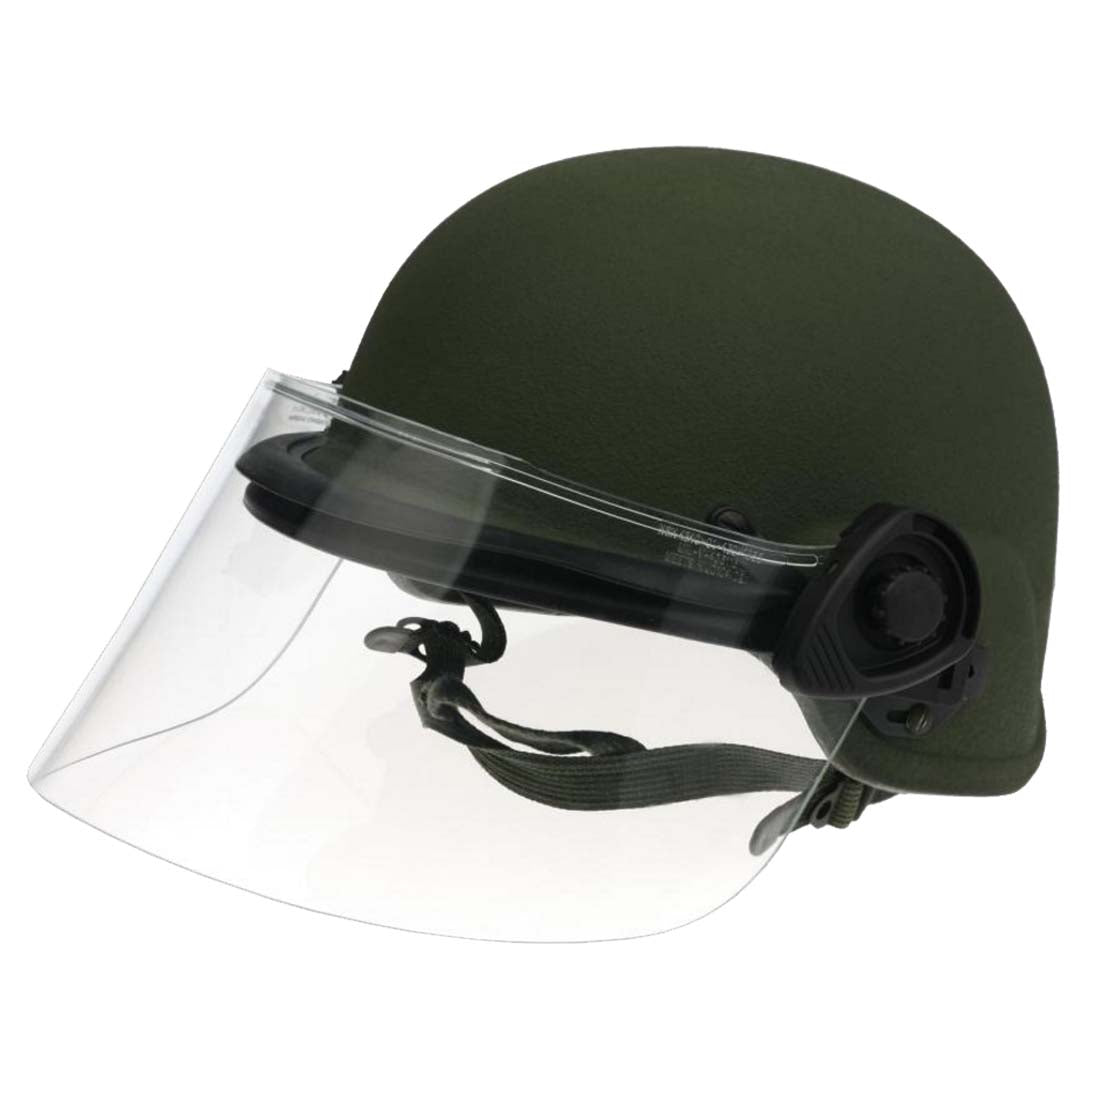 Paulson DK5-H.150HM Military Police Riot Face Shields